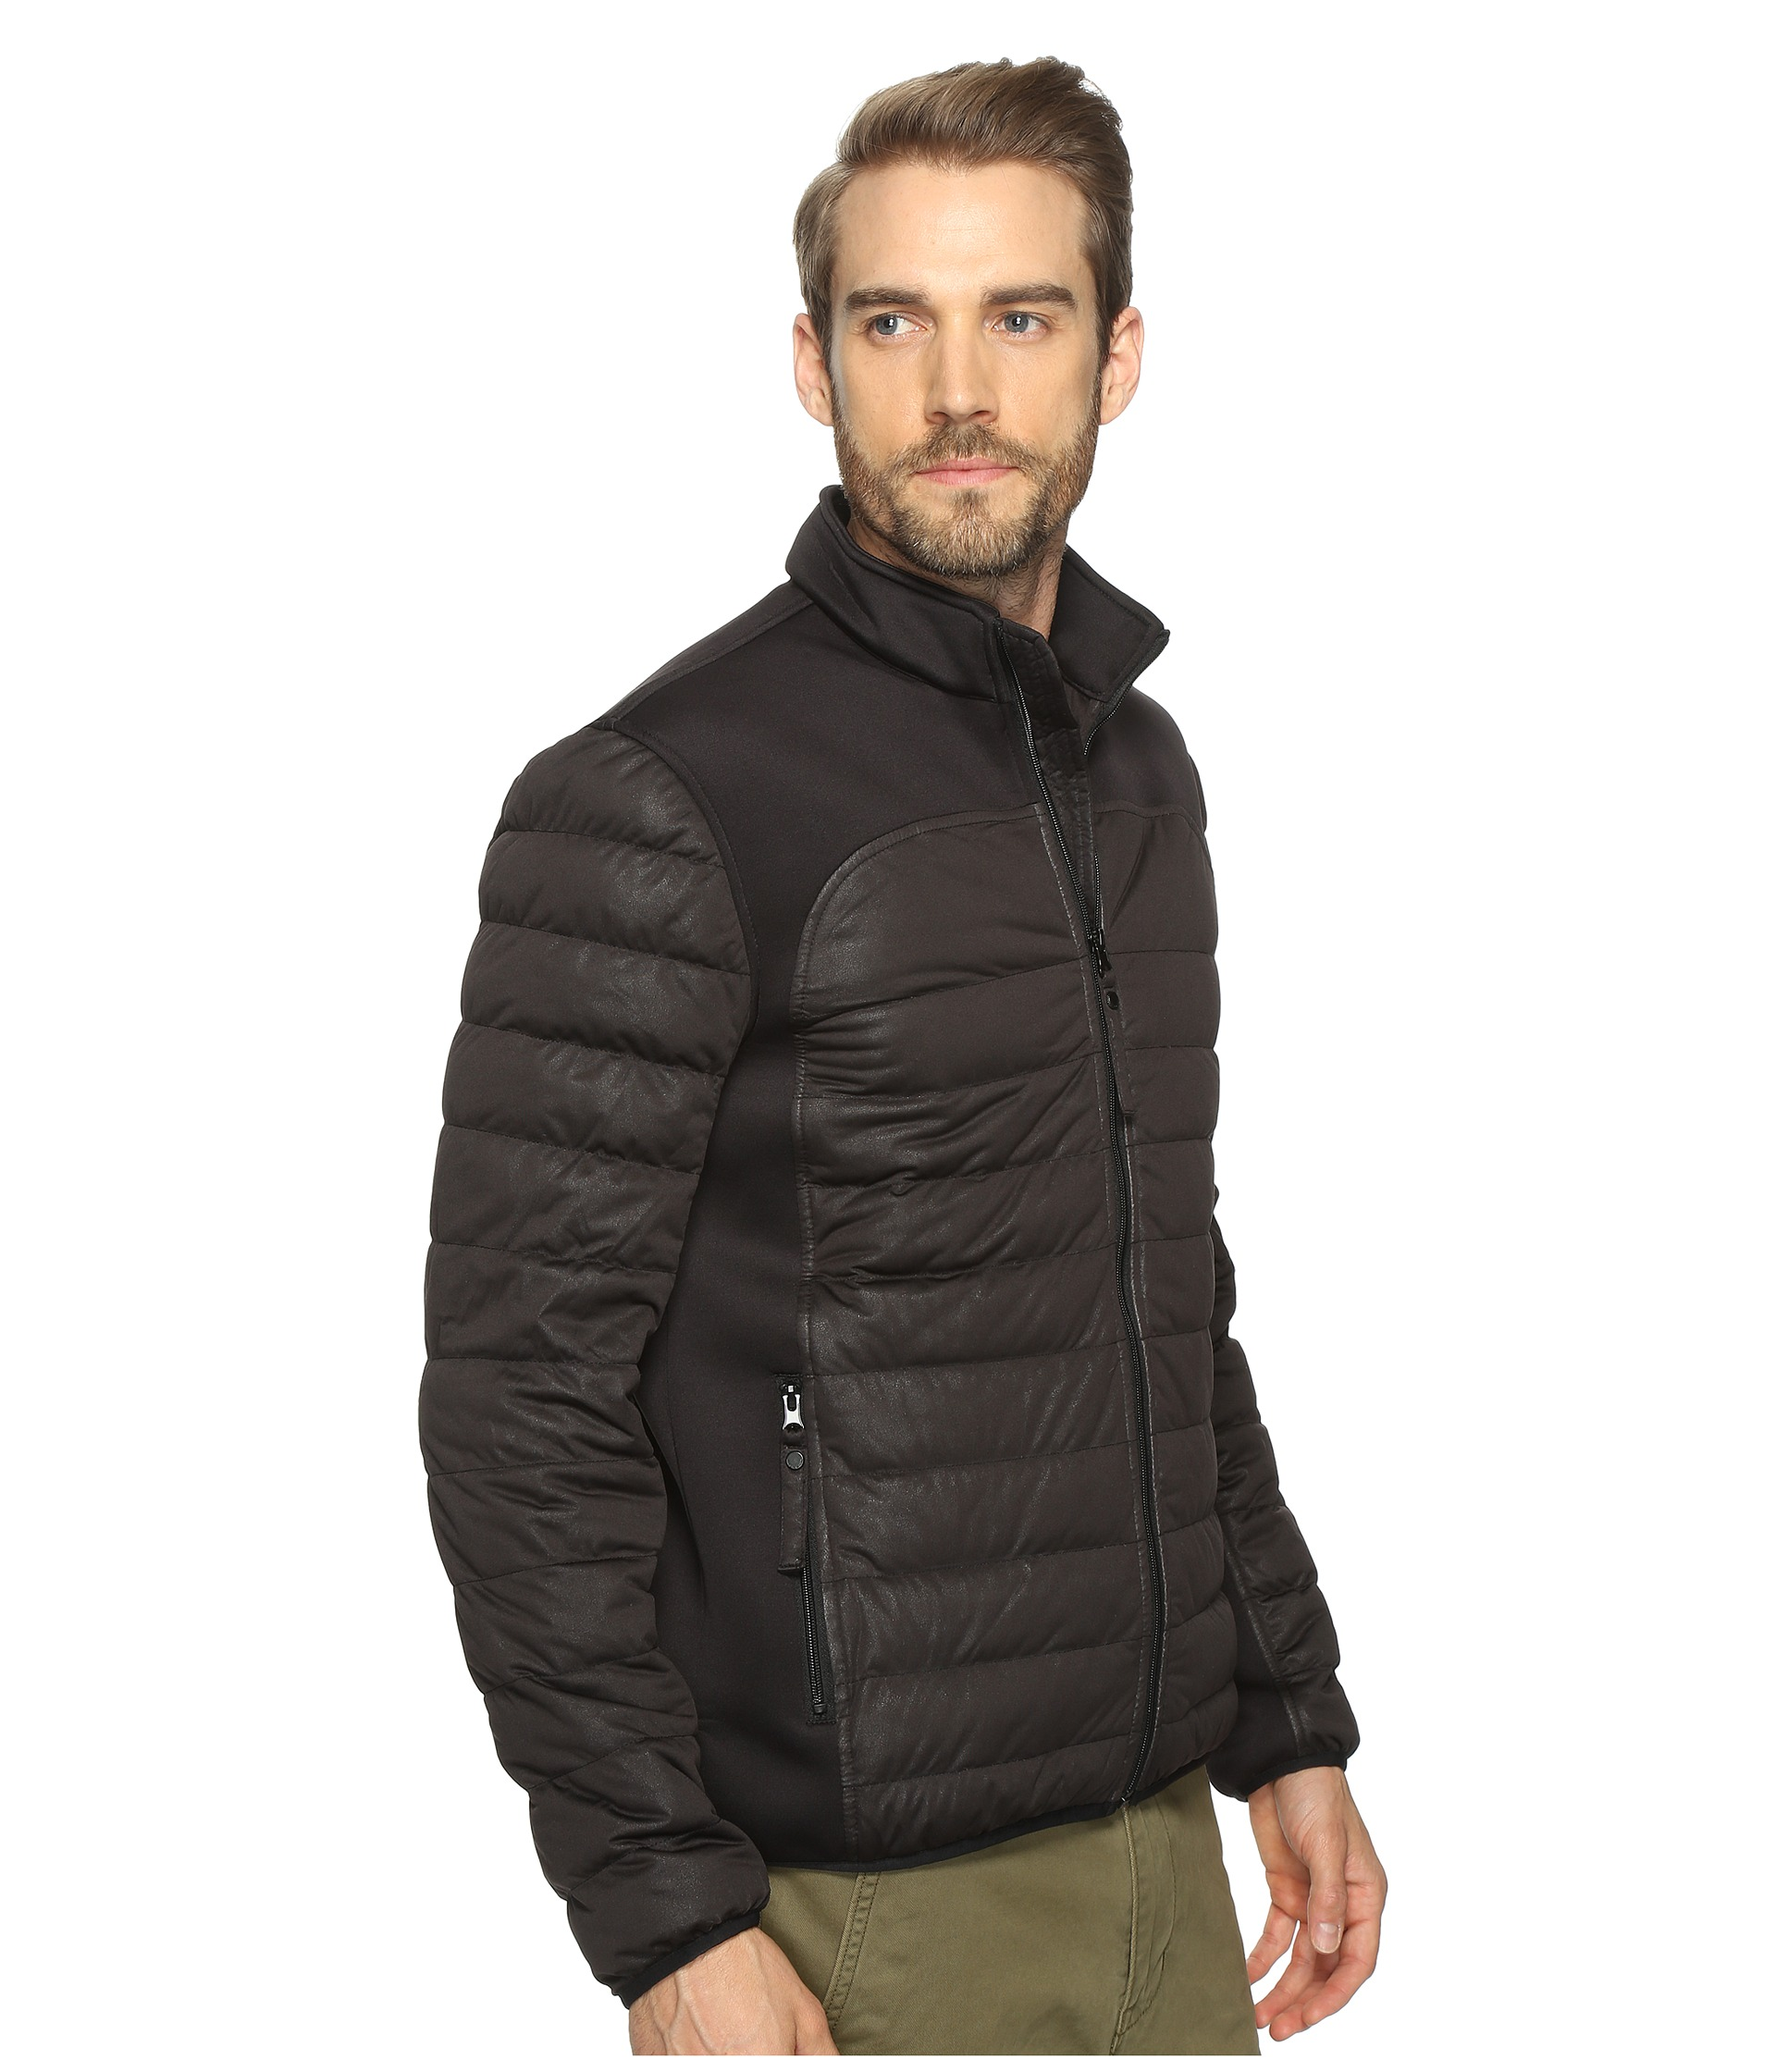 12a9e246c Andrew mark jacket / Riverb nation